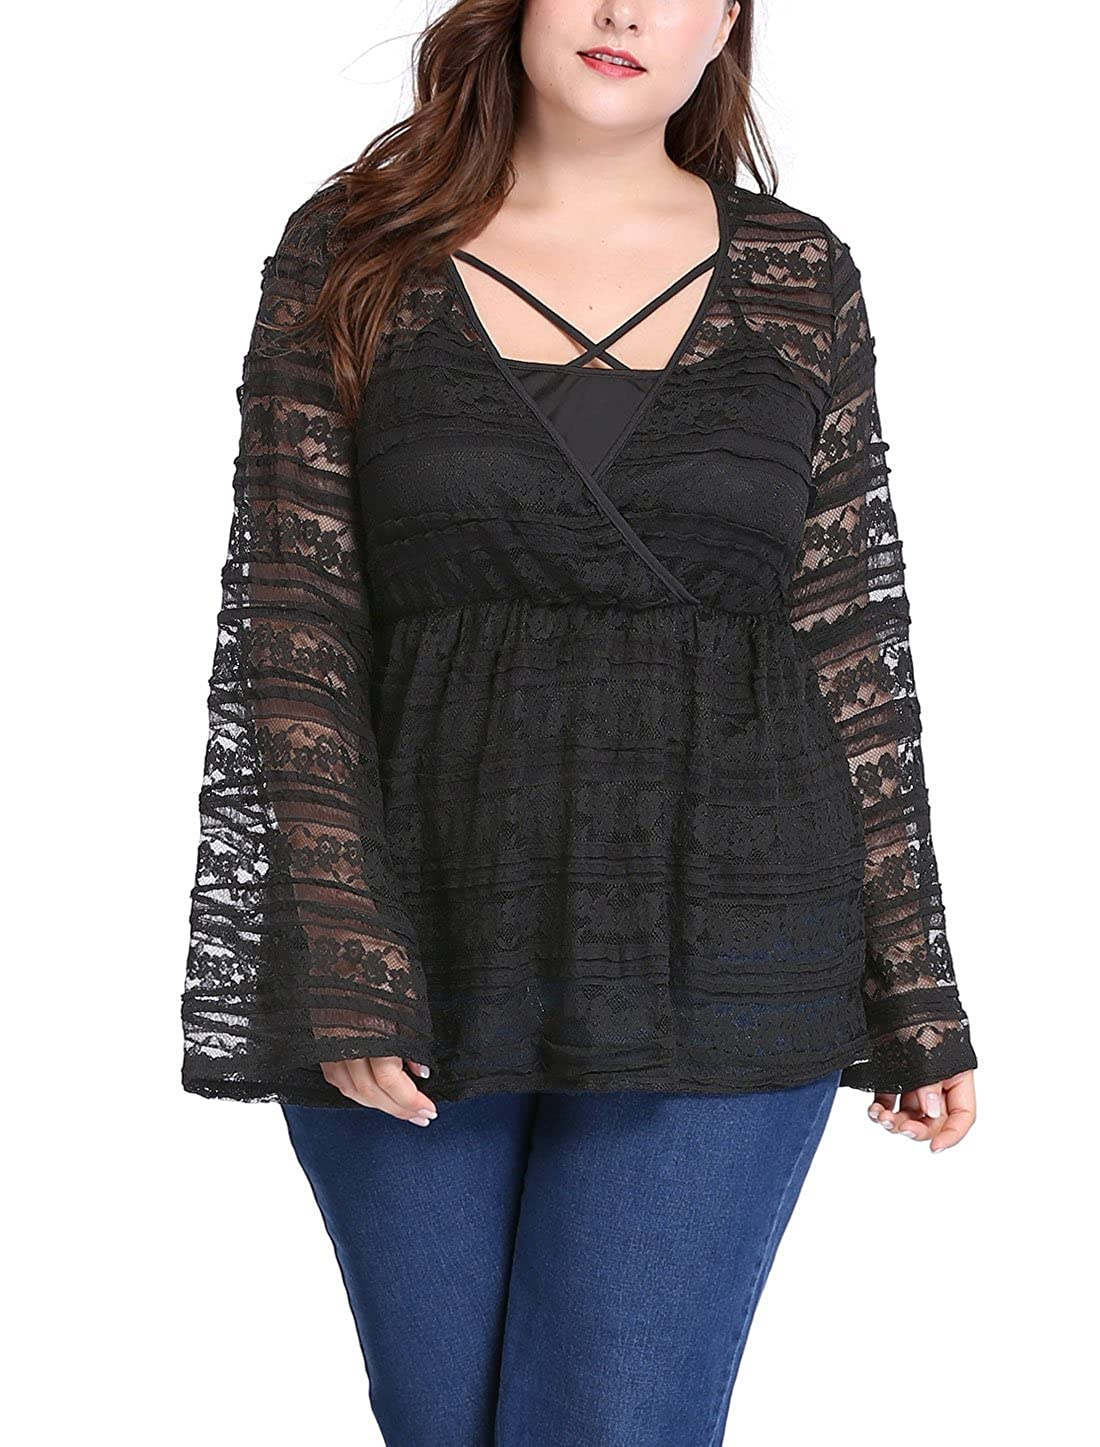 9ac3f08d415 uxcell Agnes Orinda Women s Plus Size Bell Sleeves Sheer Lace Babydoll Top  w Camisole Sets at Amazon Women s Clothing store